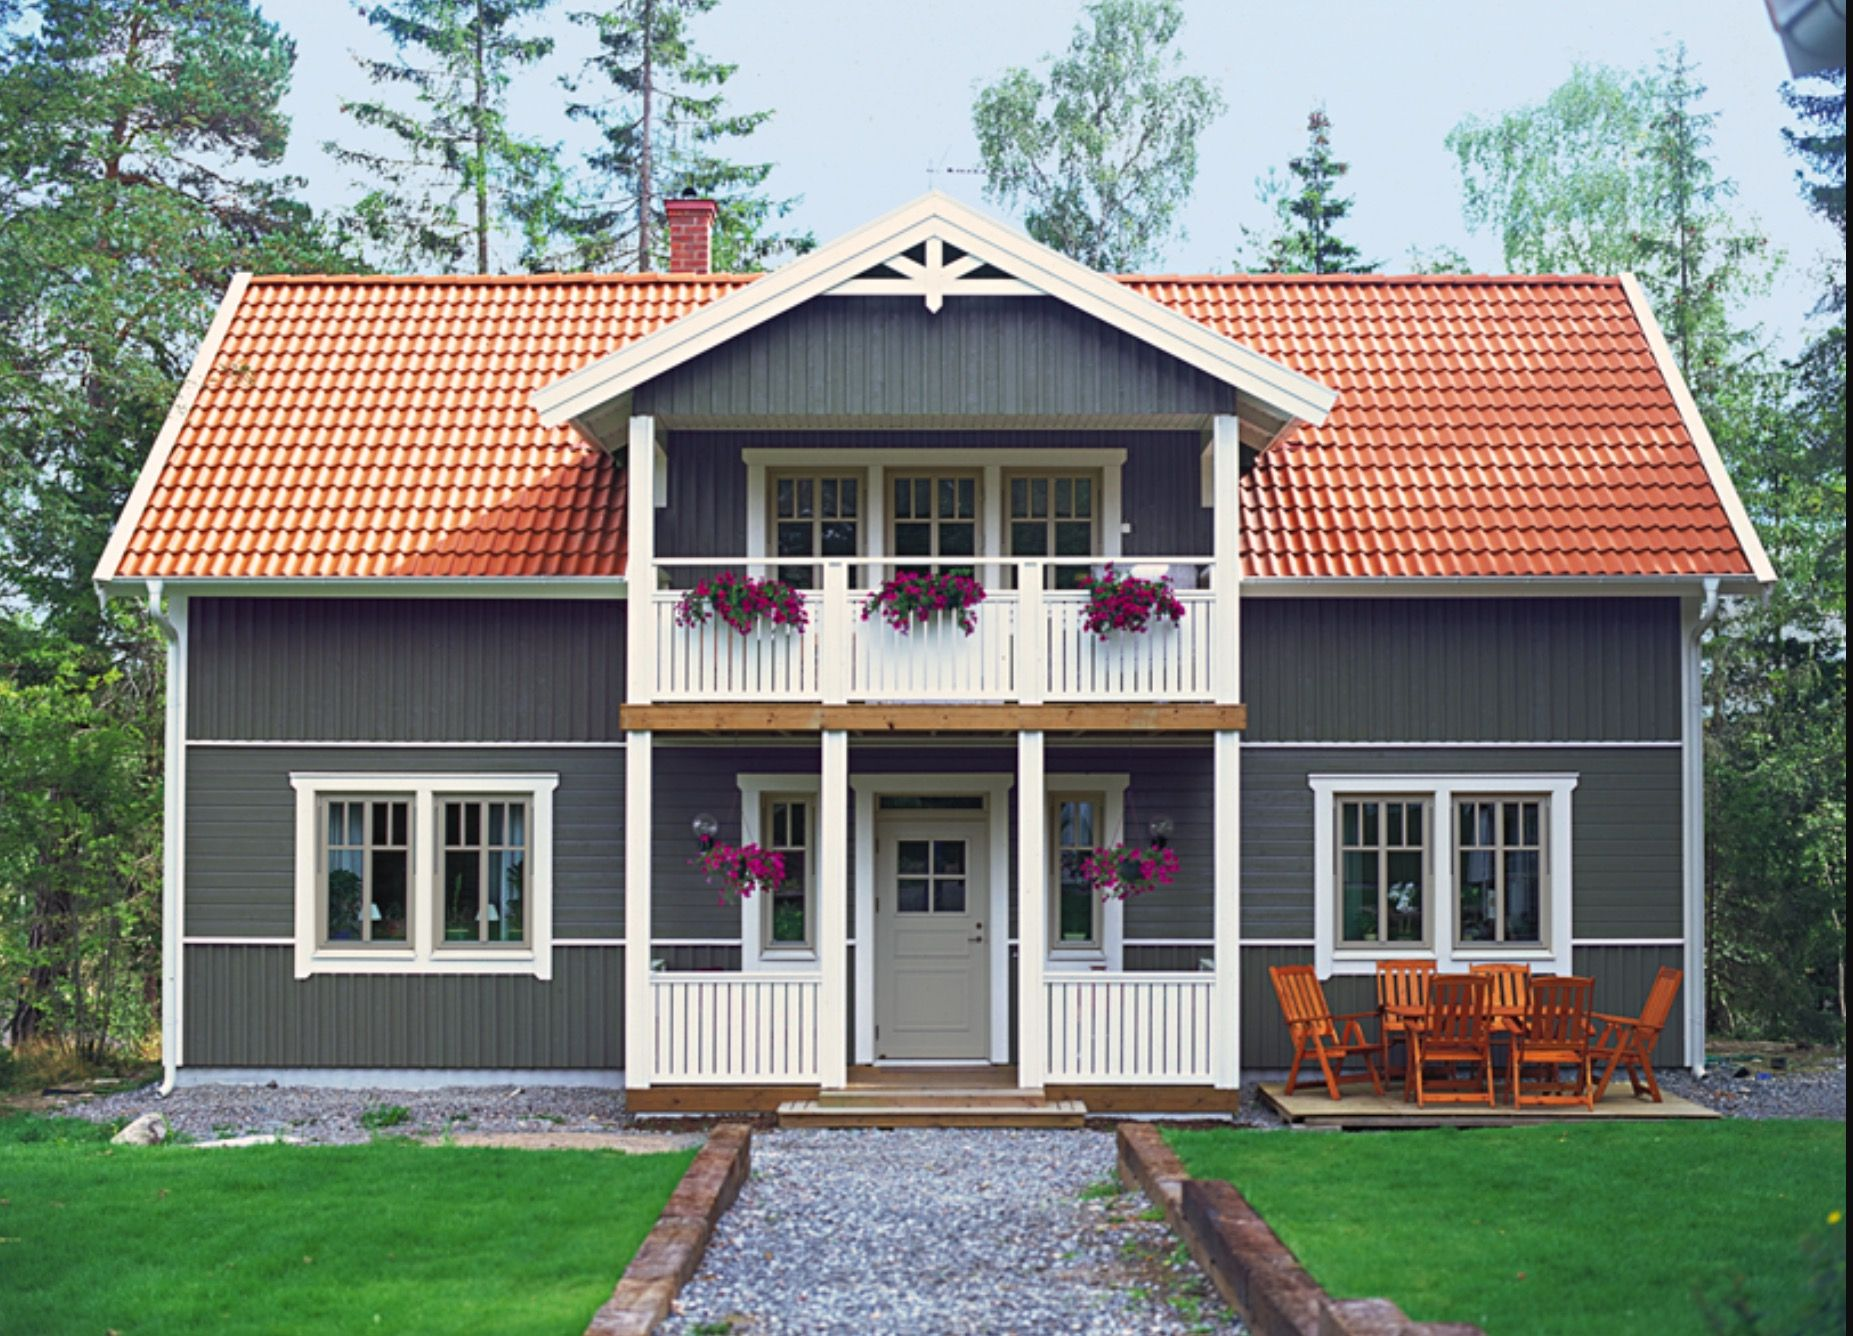 Neues haus front design pin by sara on fasad  pinterest